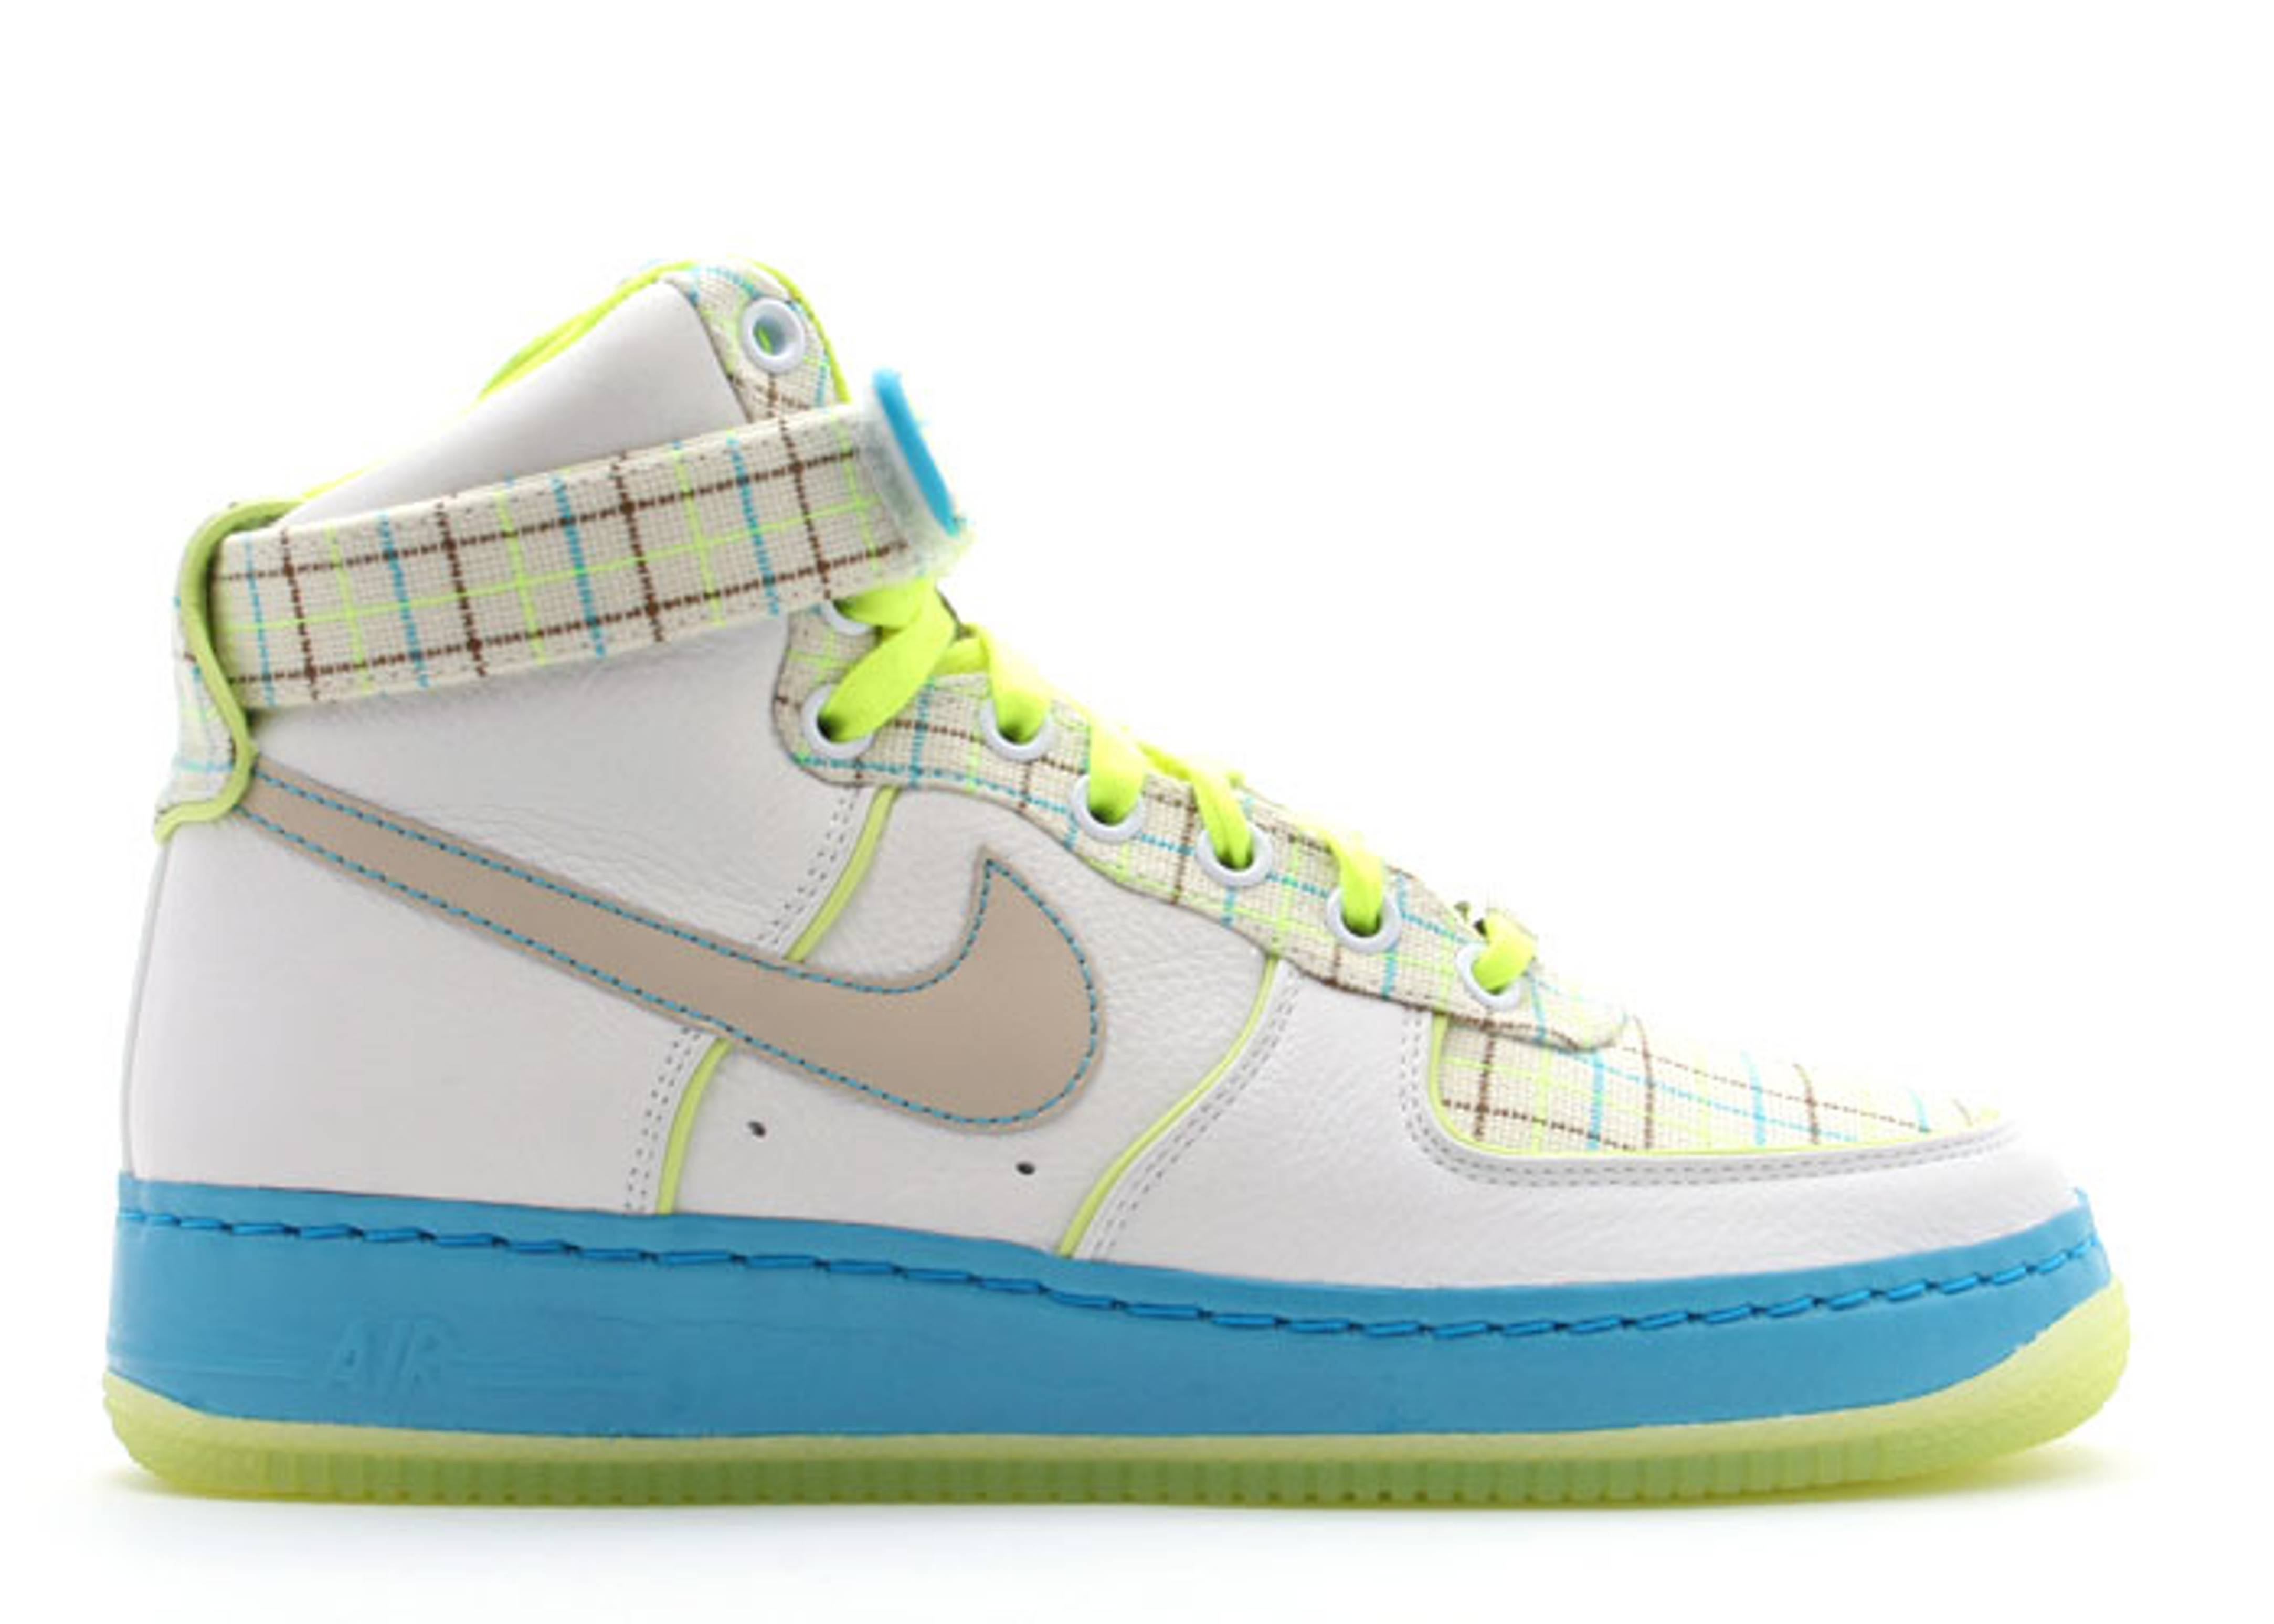 wmns air force 1 hi spm i/o 07